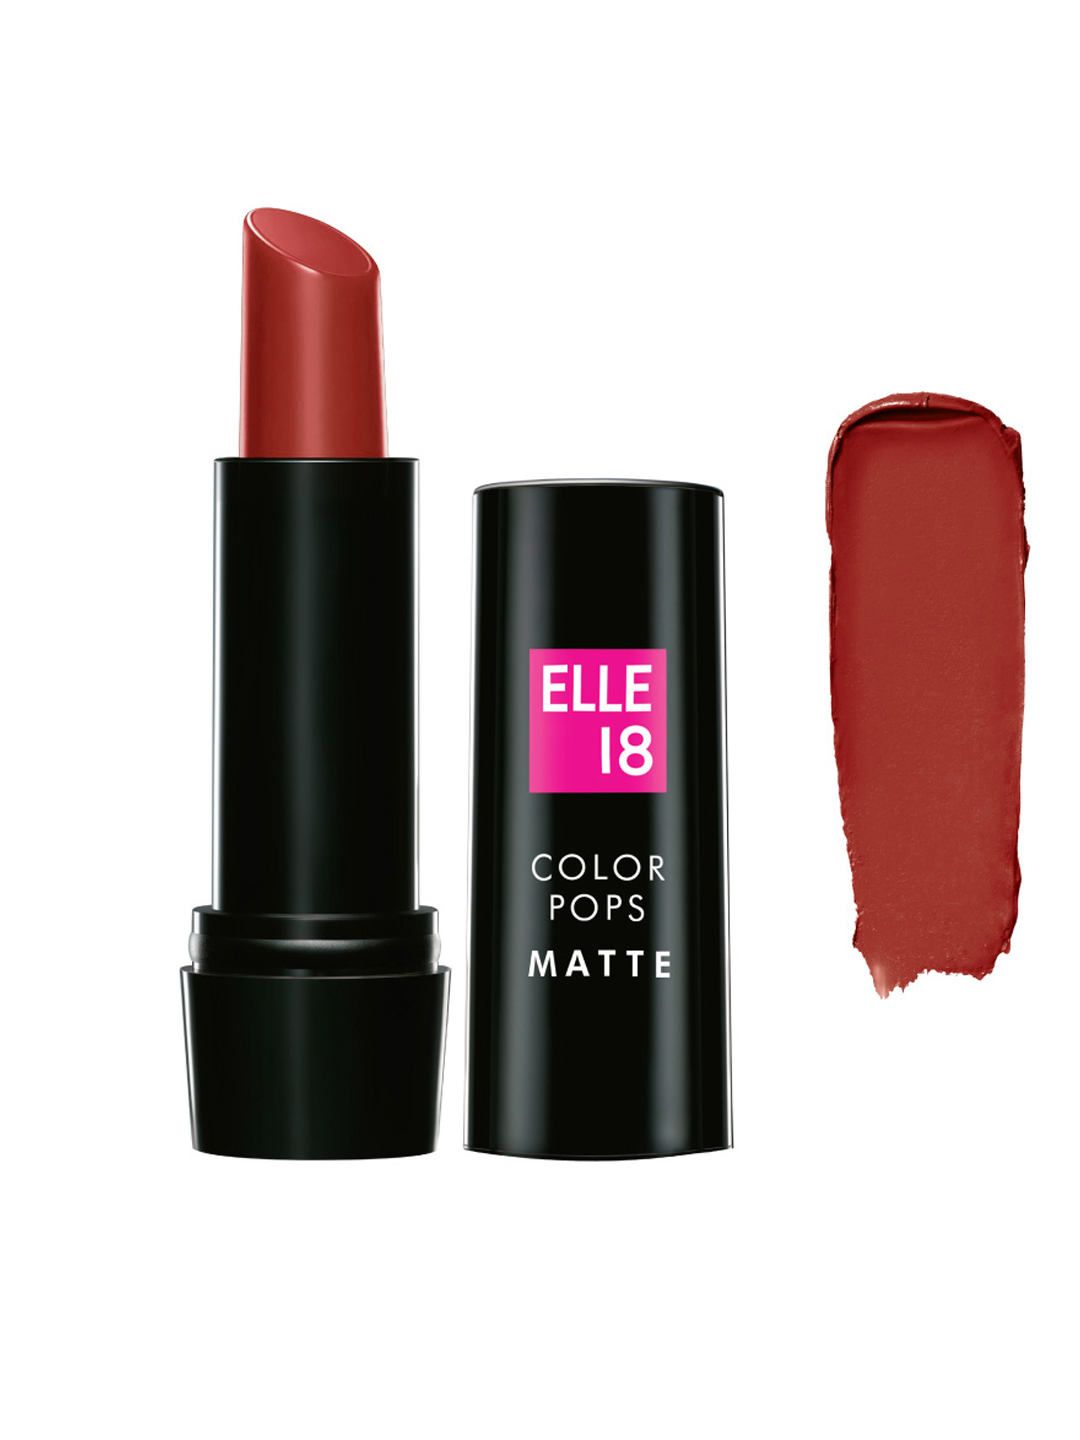 ELLE 18 Color Pop Red Spin Matte Lip Color R36 Price in India